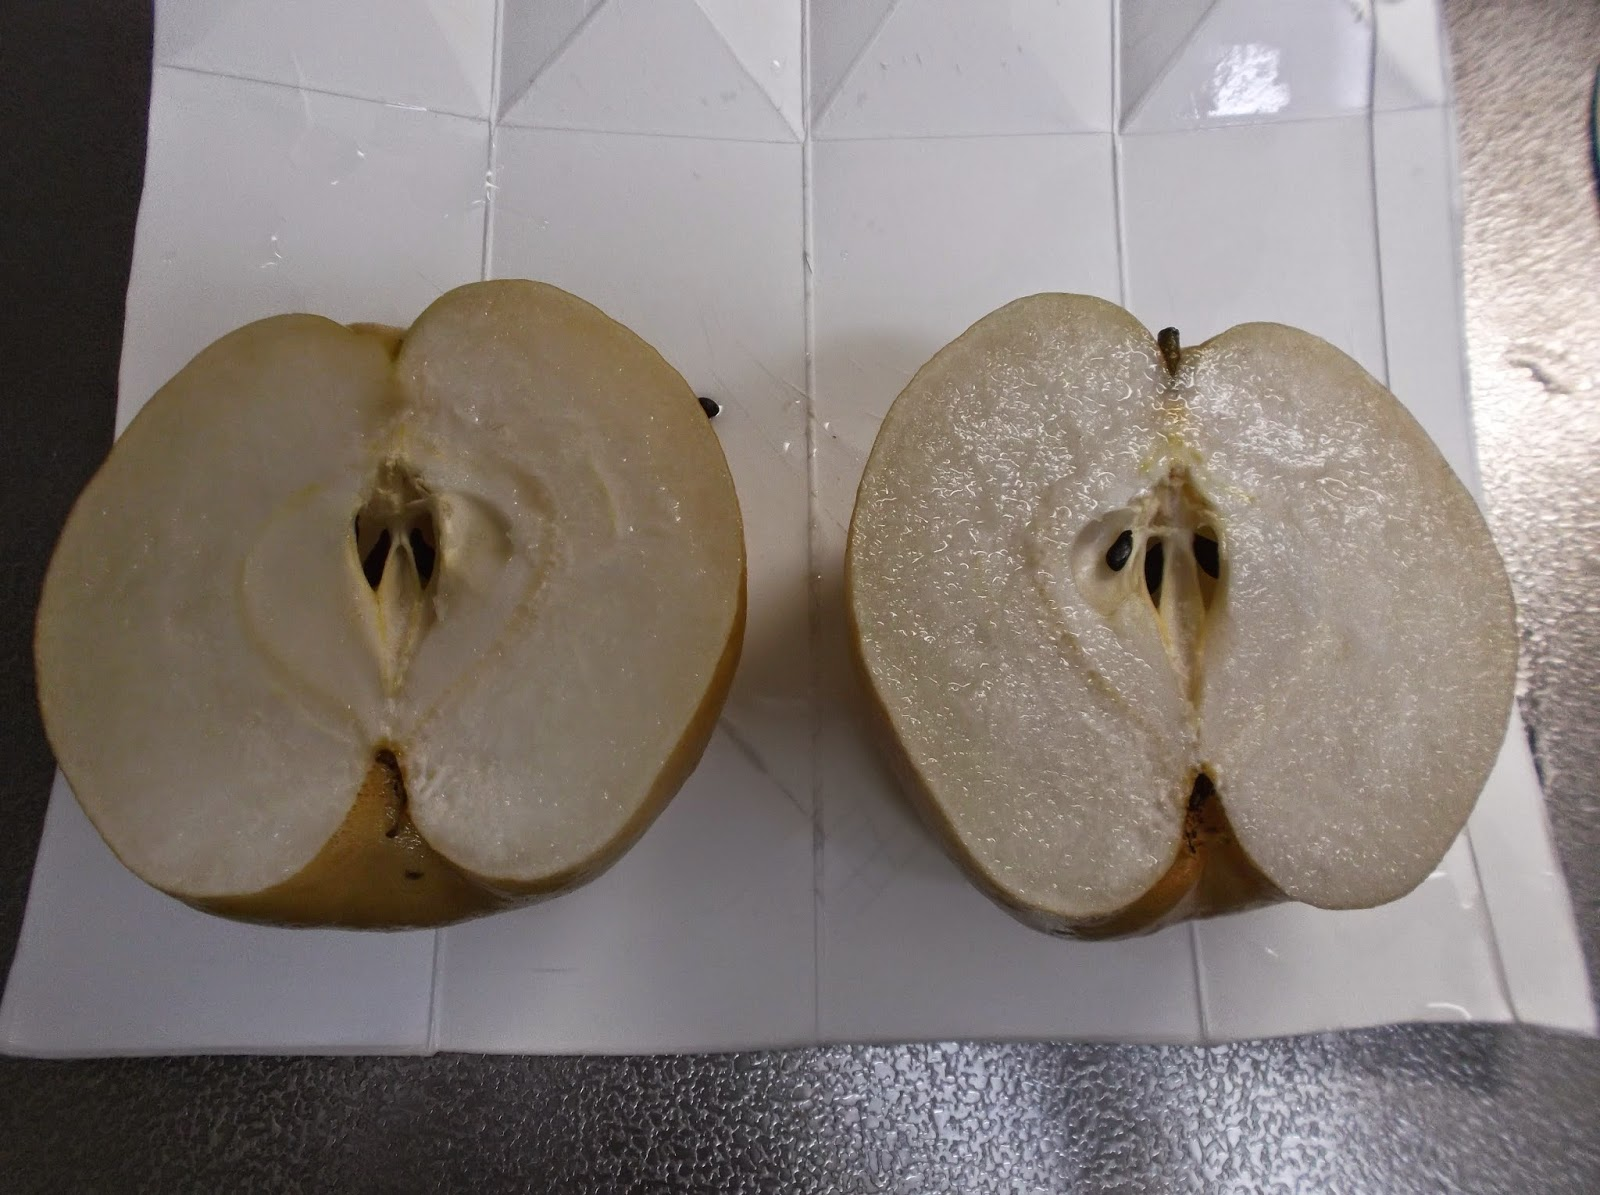 how to tell if a nashi pear is ripe